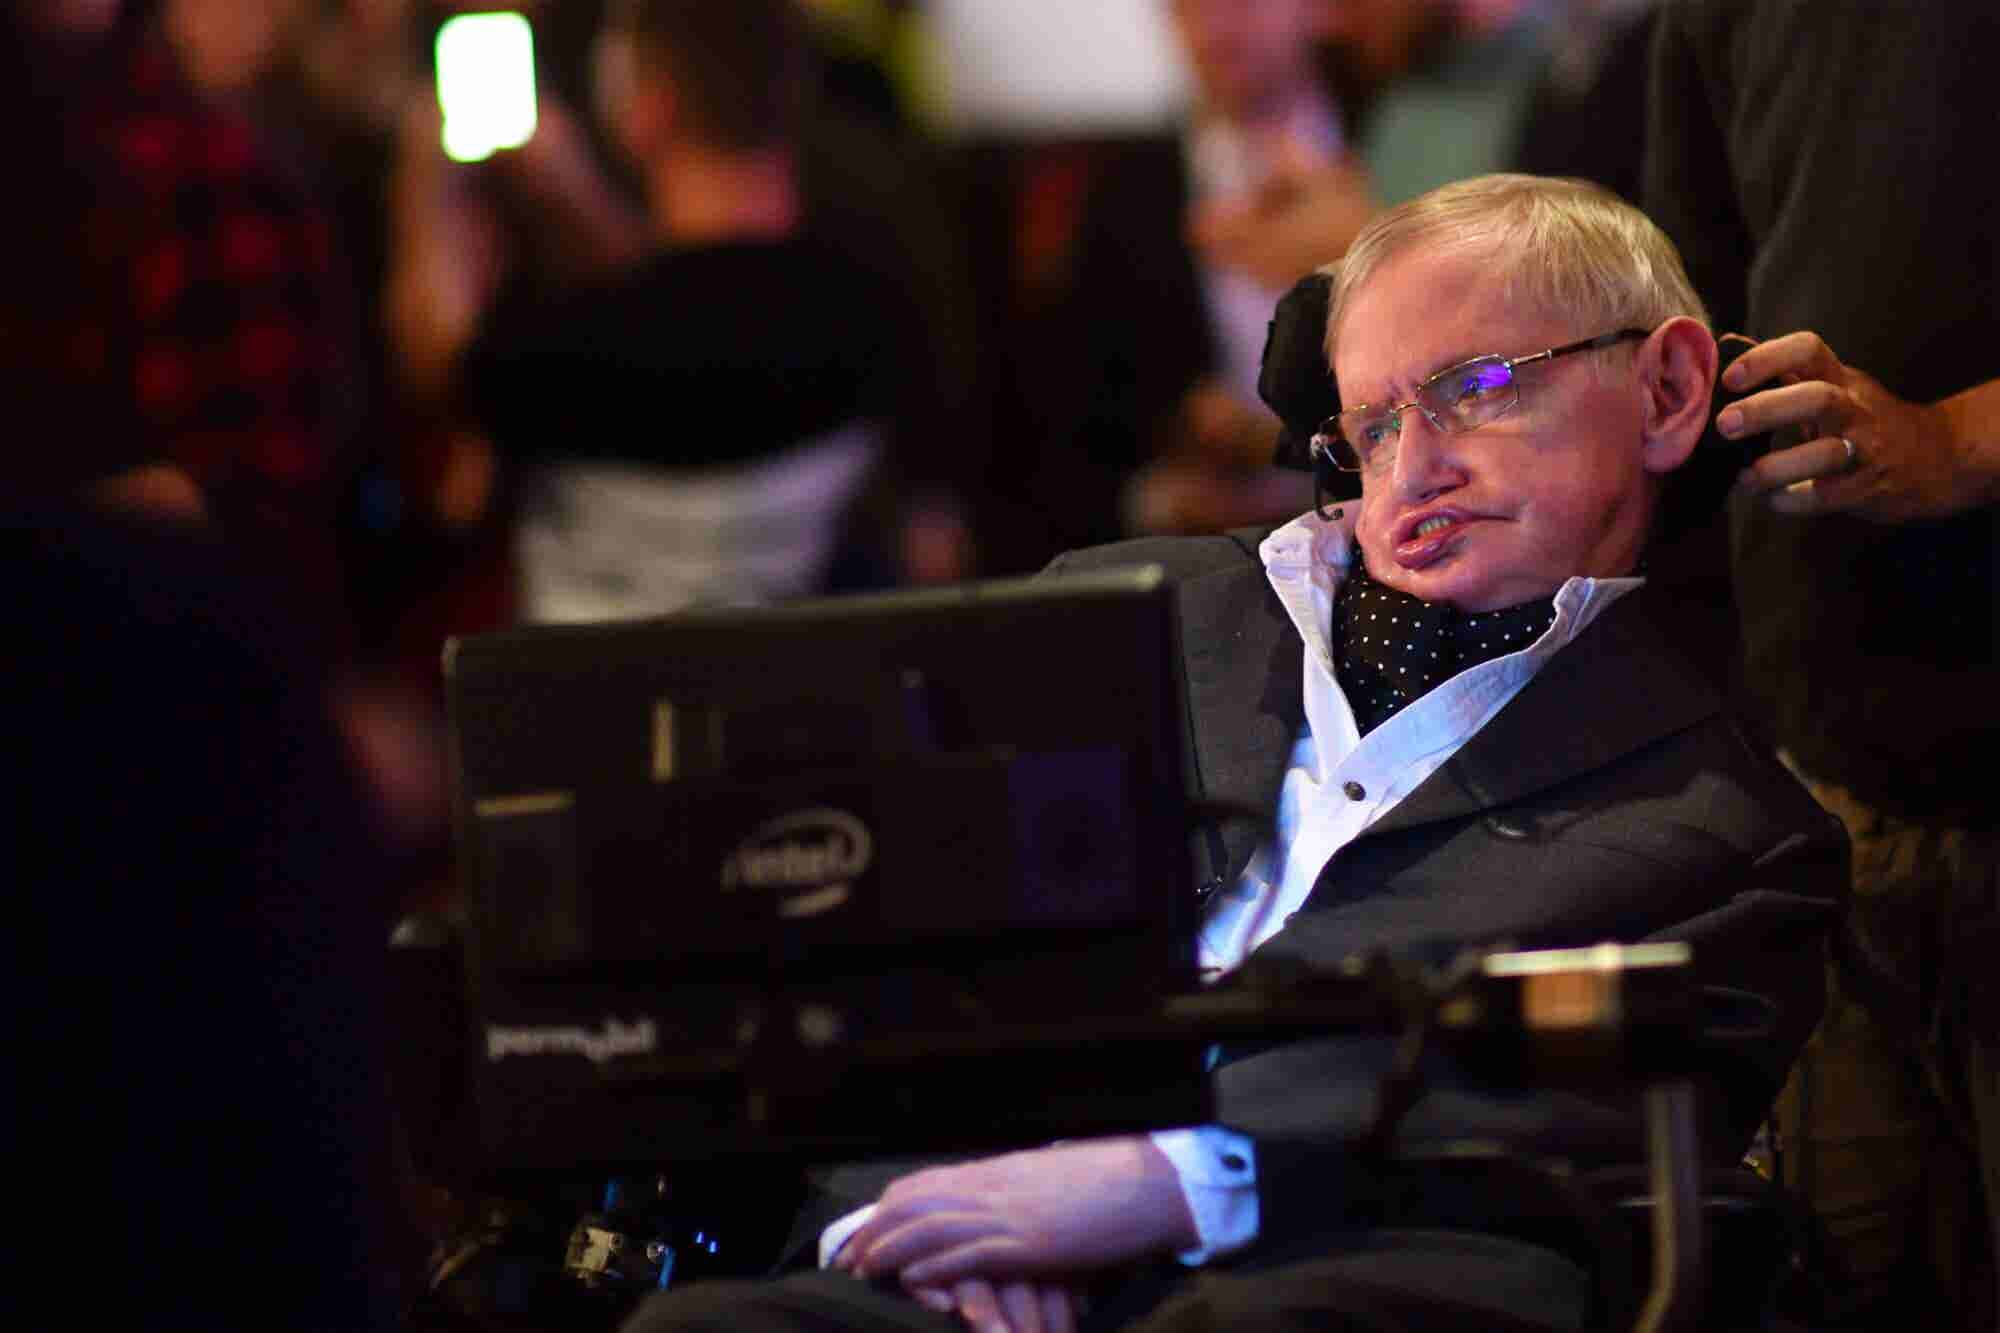 Stephen Hawking's Final Paper on Black Holes Is Now Online